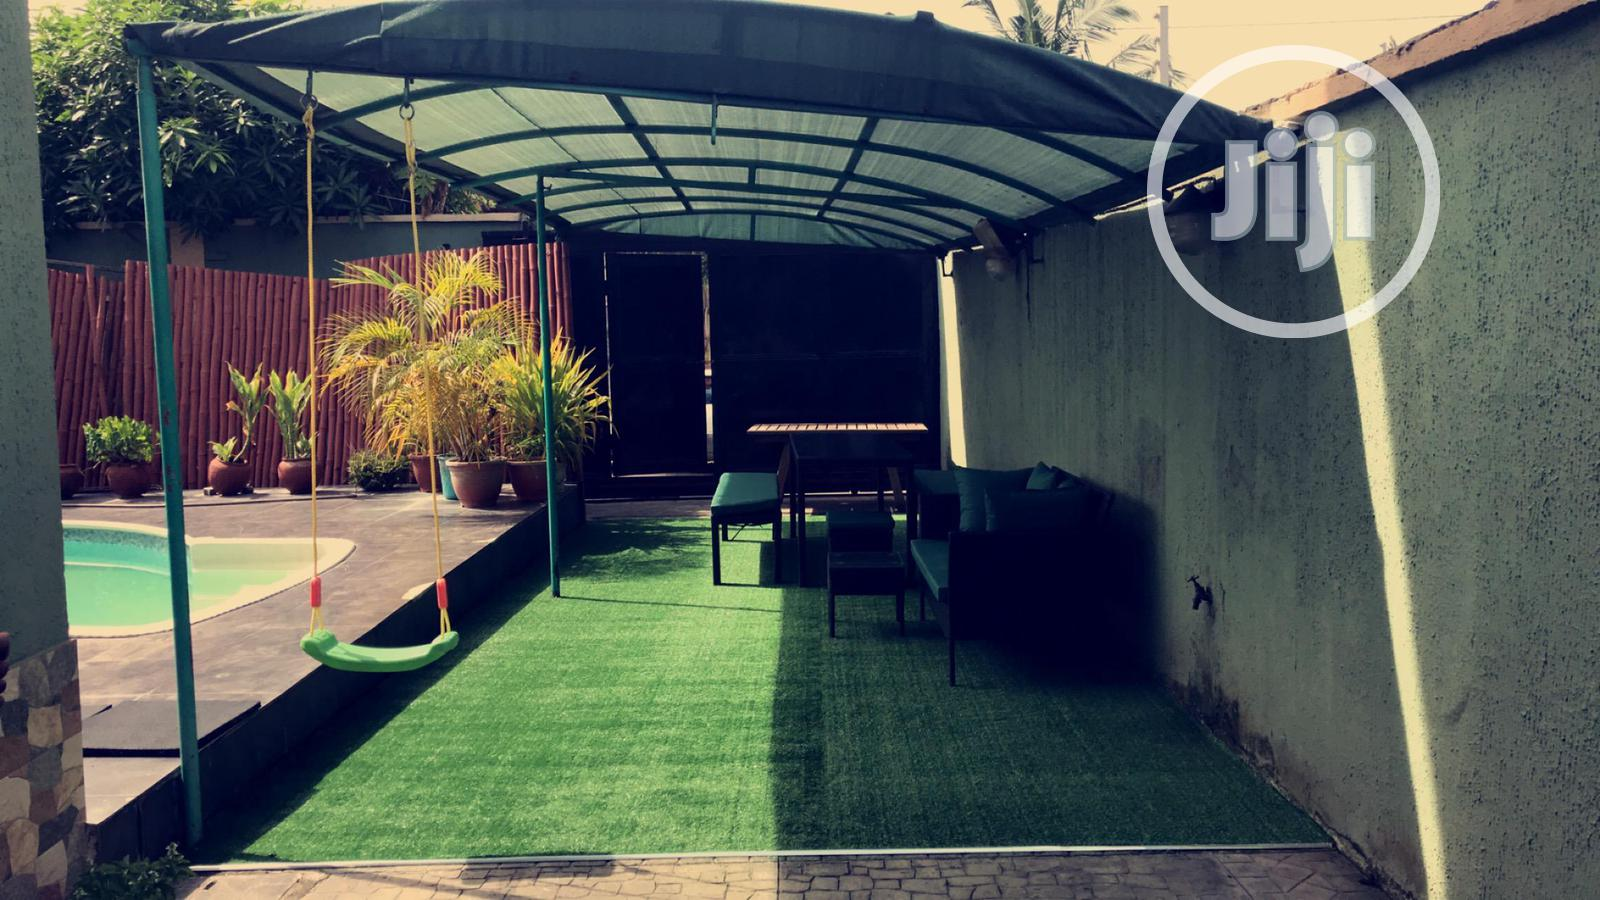 Synthetic Grass Rugs For Private Space For Kids Playground